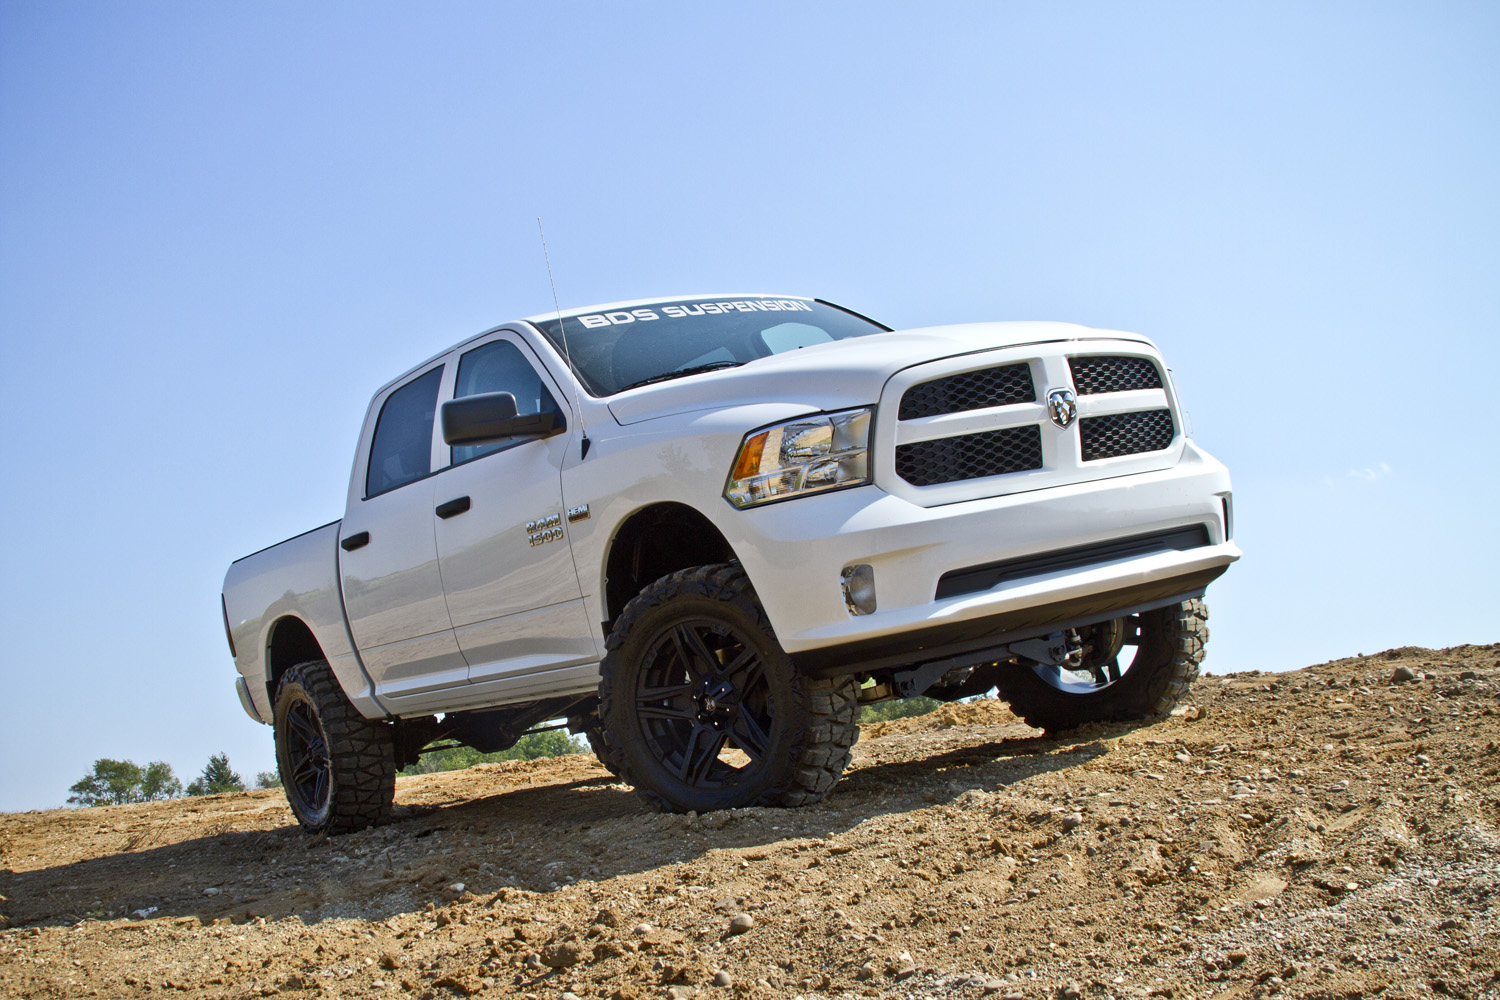 Dodge Ram Lifted 6 Inches With Perfect 2012 Inch Lift Amazing Hiures Image Dodgewin